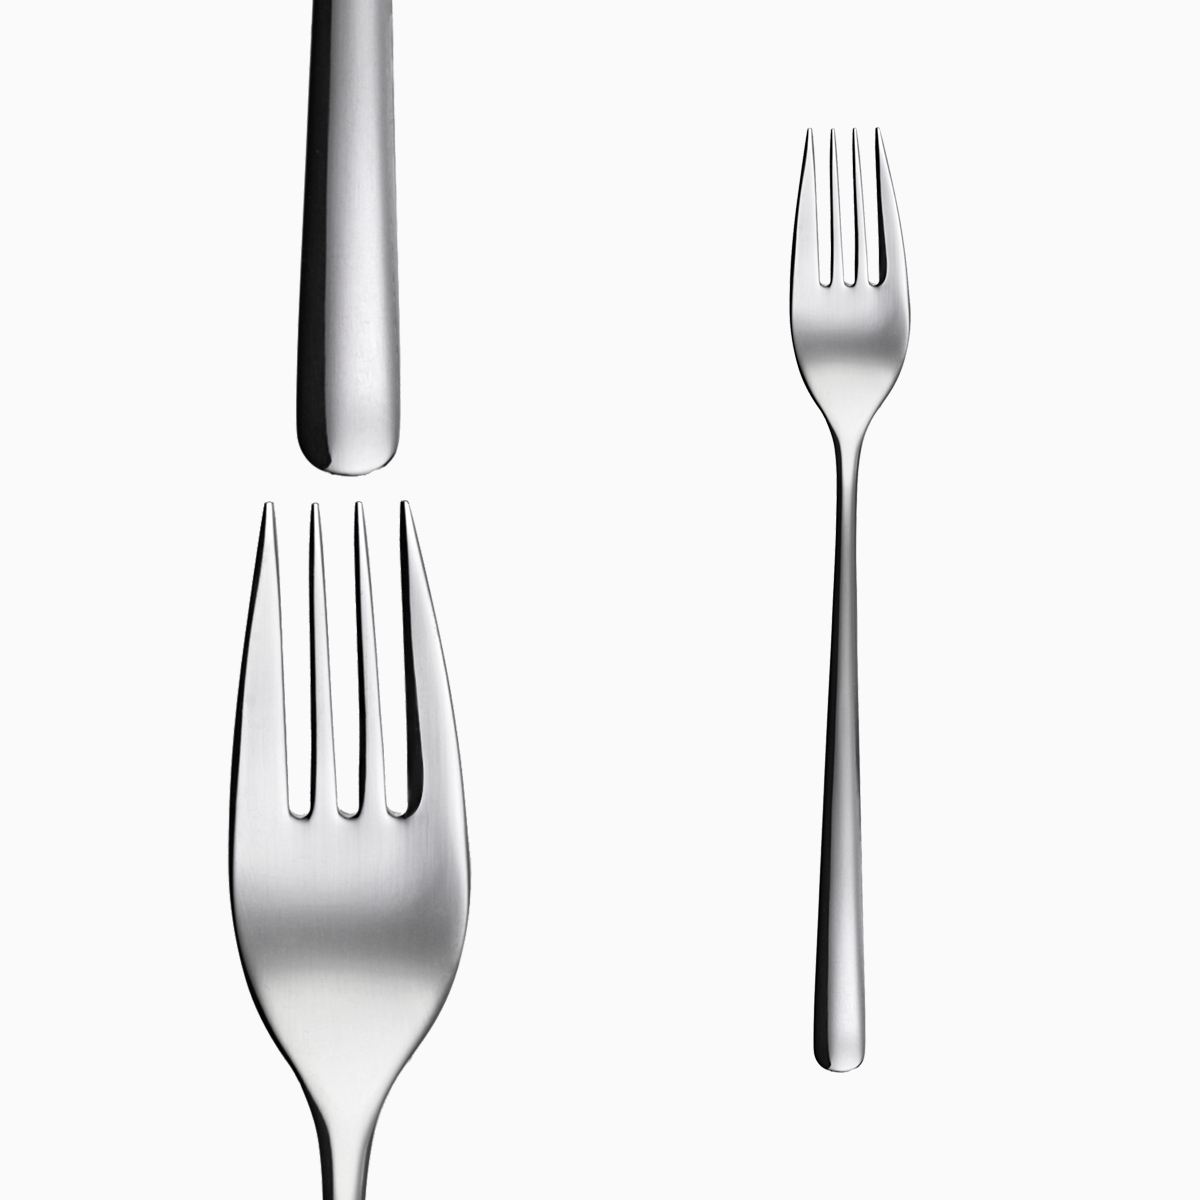 Bộ 6c Nĩa ăn Inox 304 (Set of 6pcs Table fork SS18/10) 106177